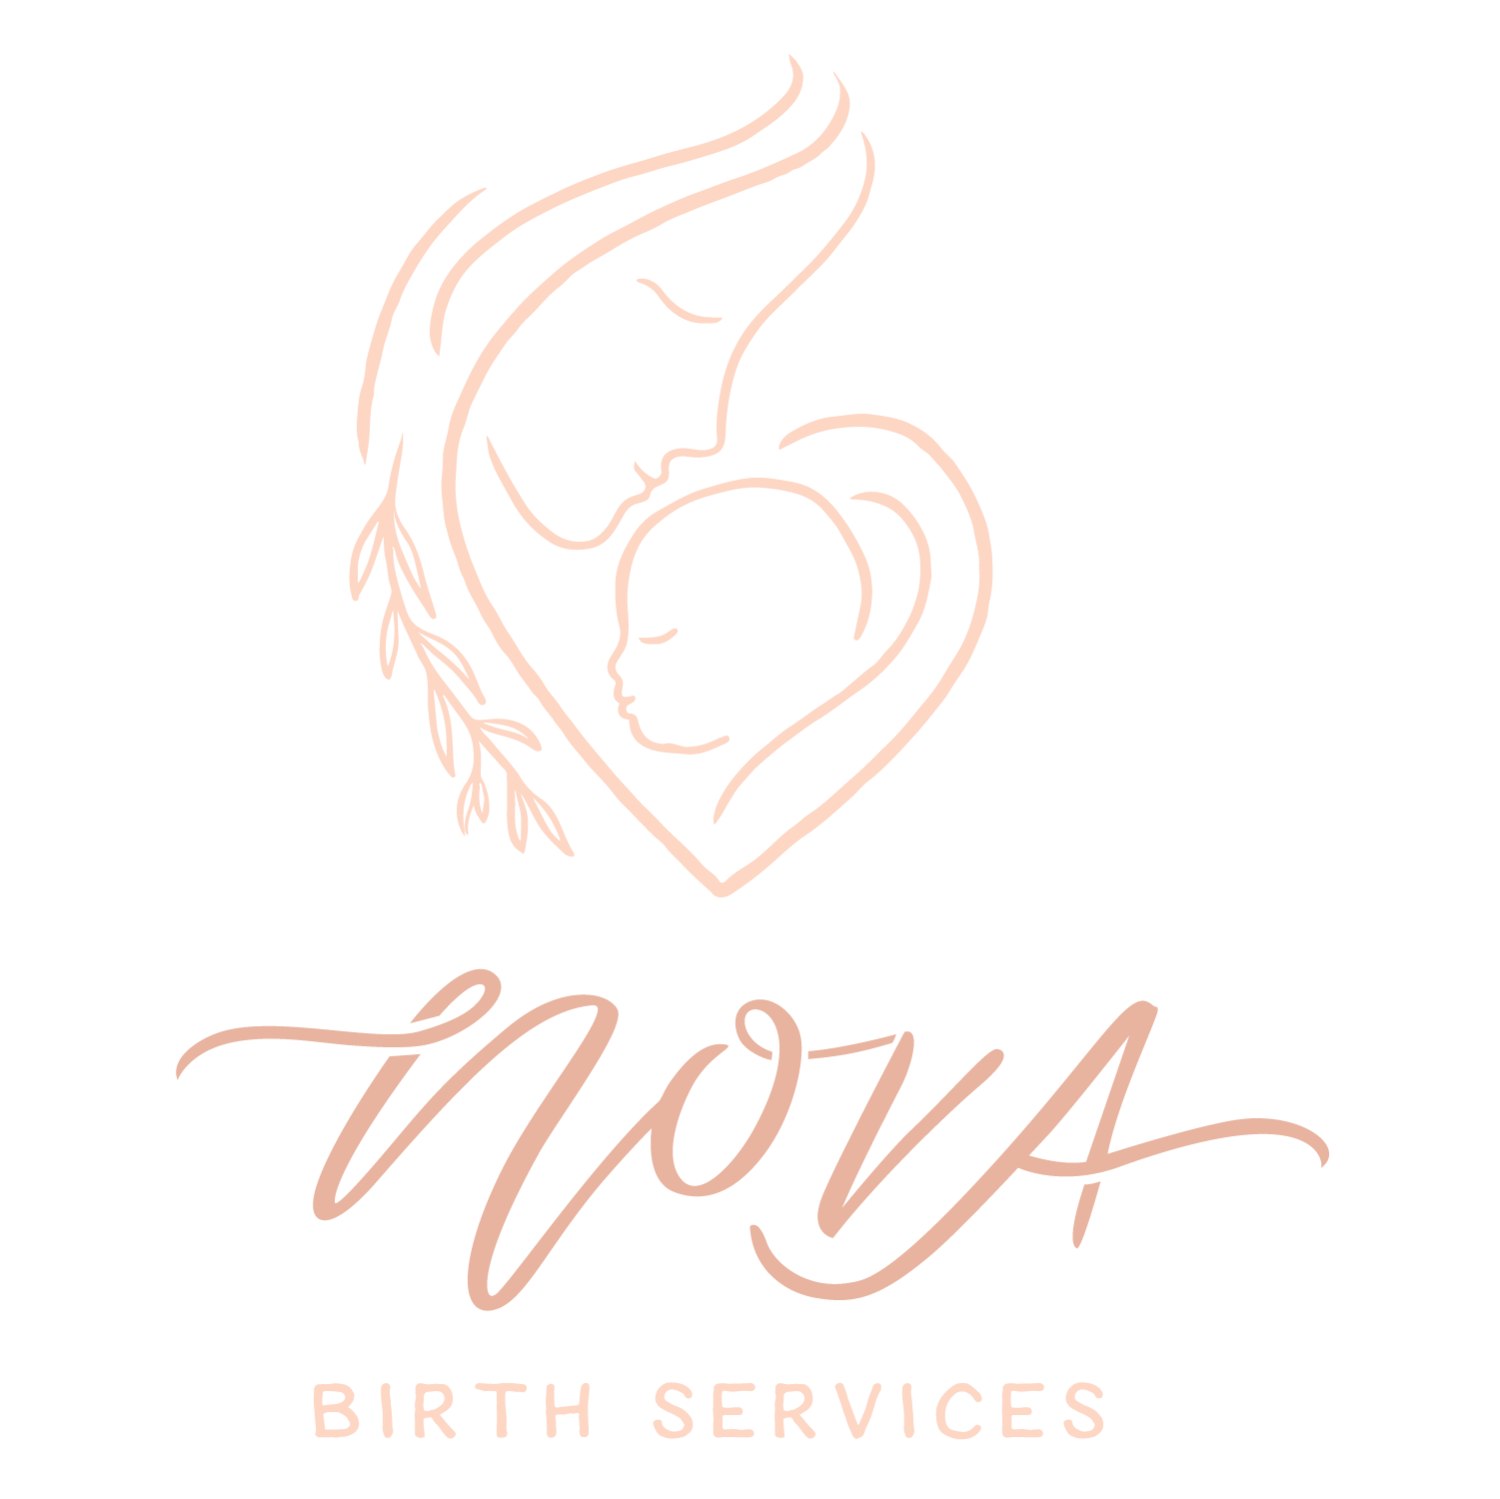 NOVA Birth Services, LLC